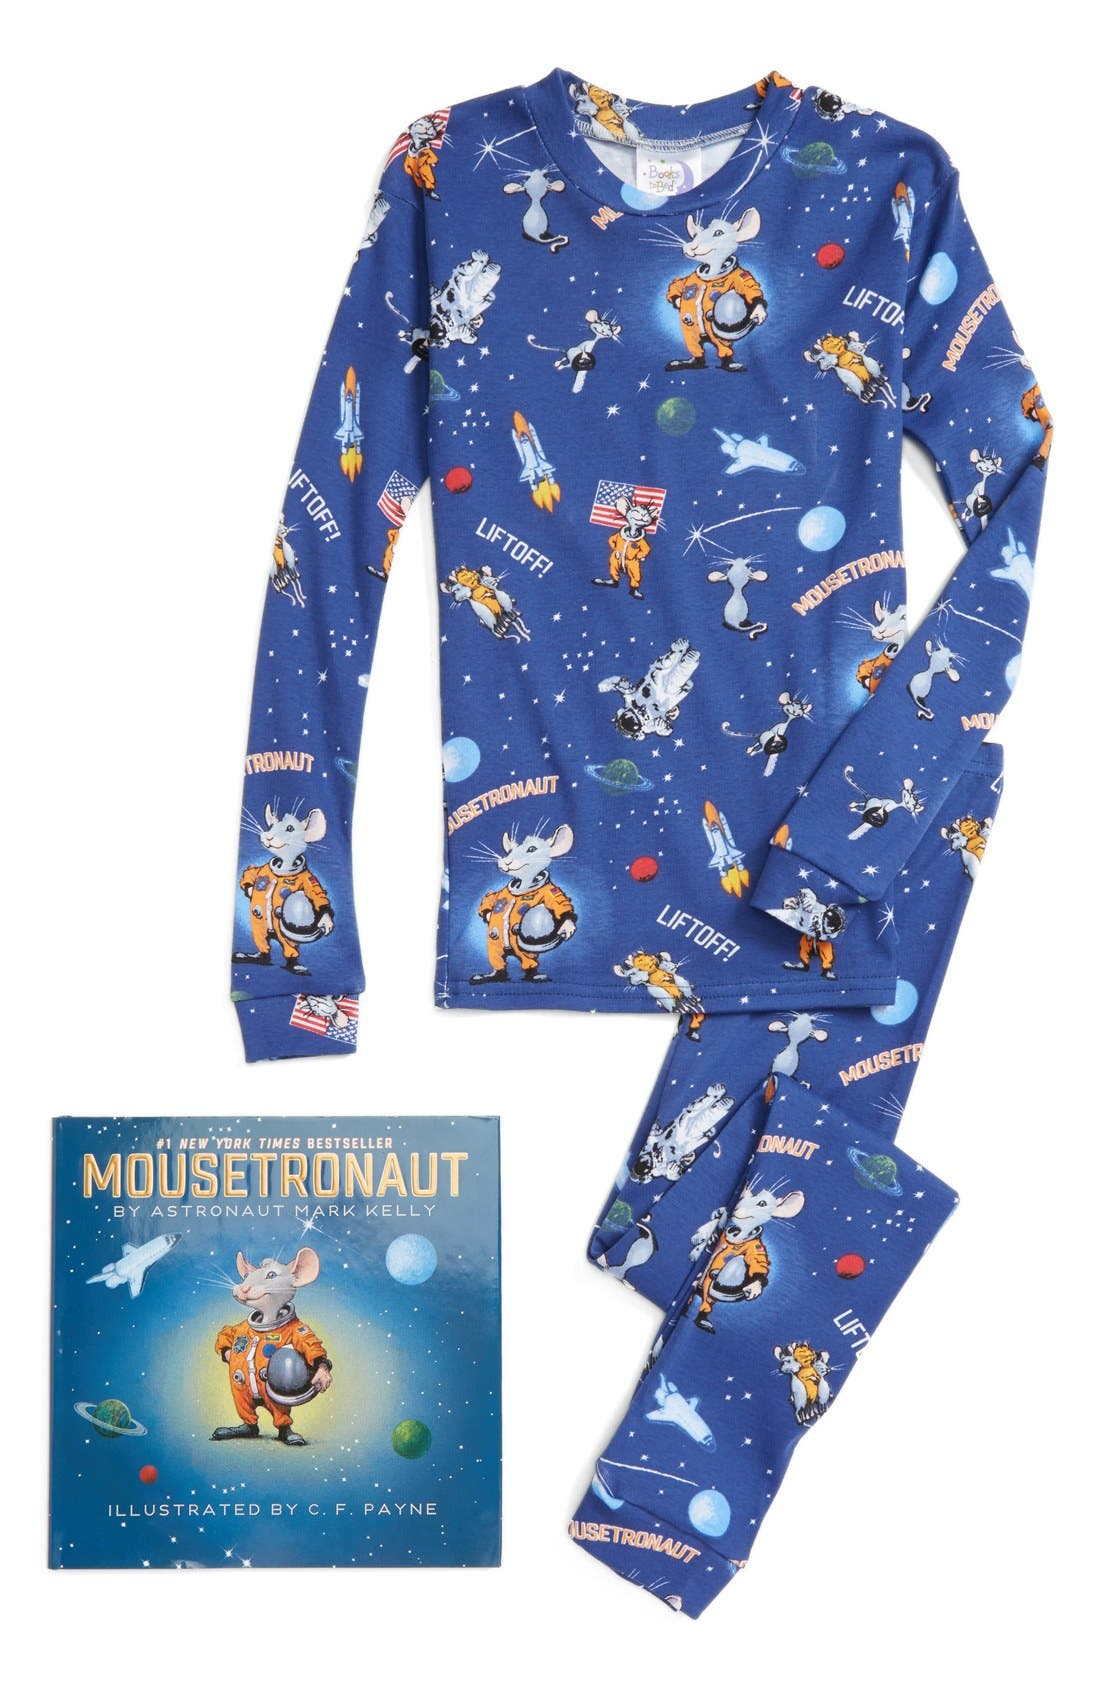 Mousetronaut Fitted Two-Piece Pajamas & Book Set, Main, color, 410